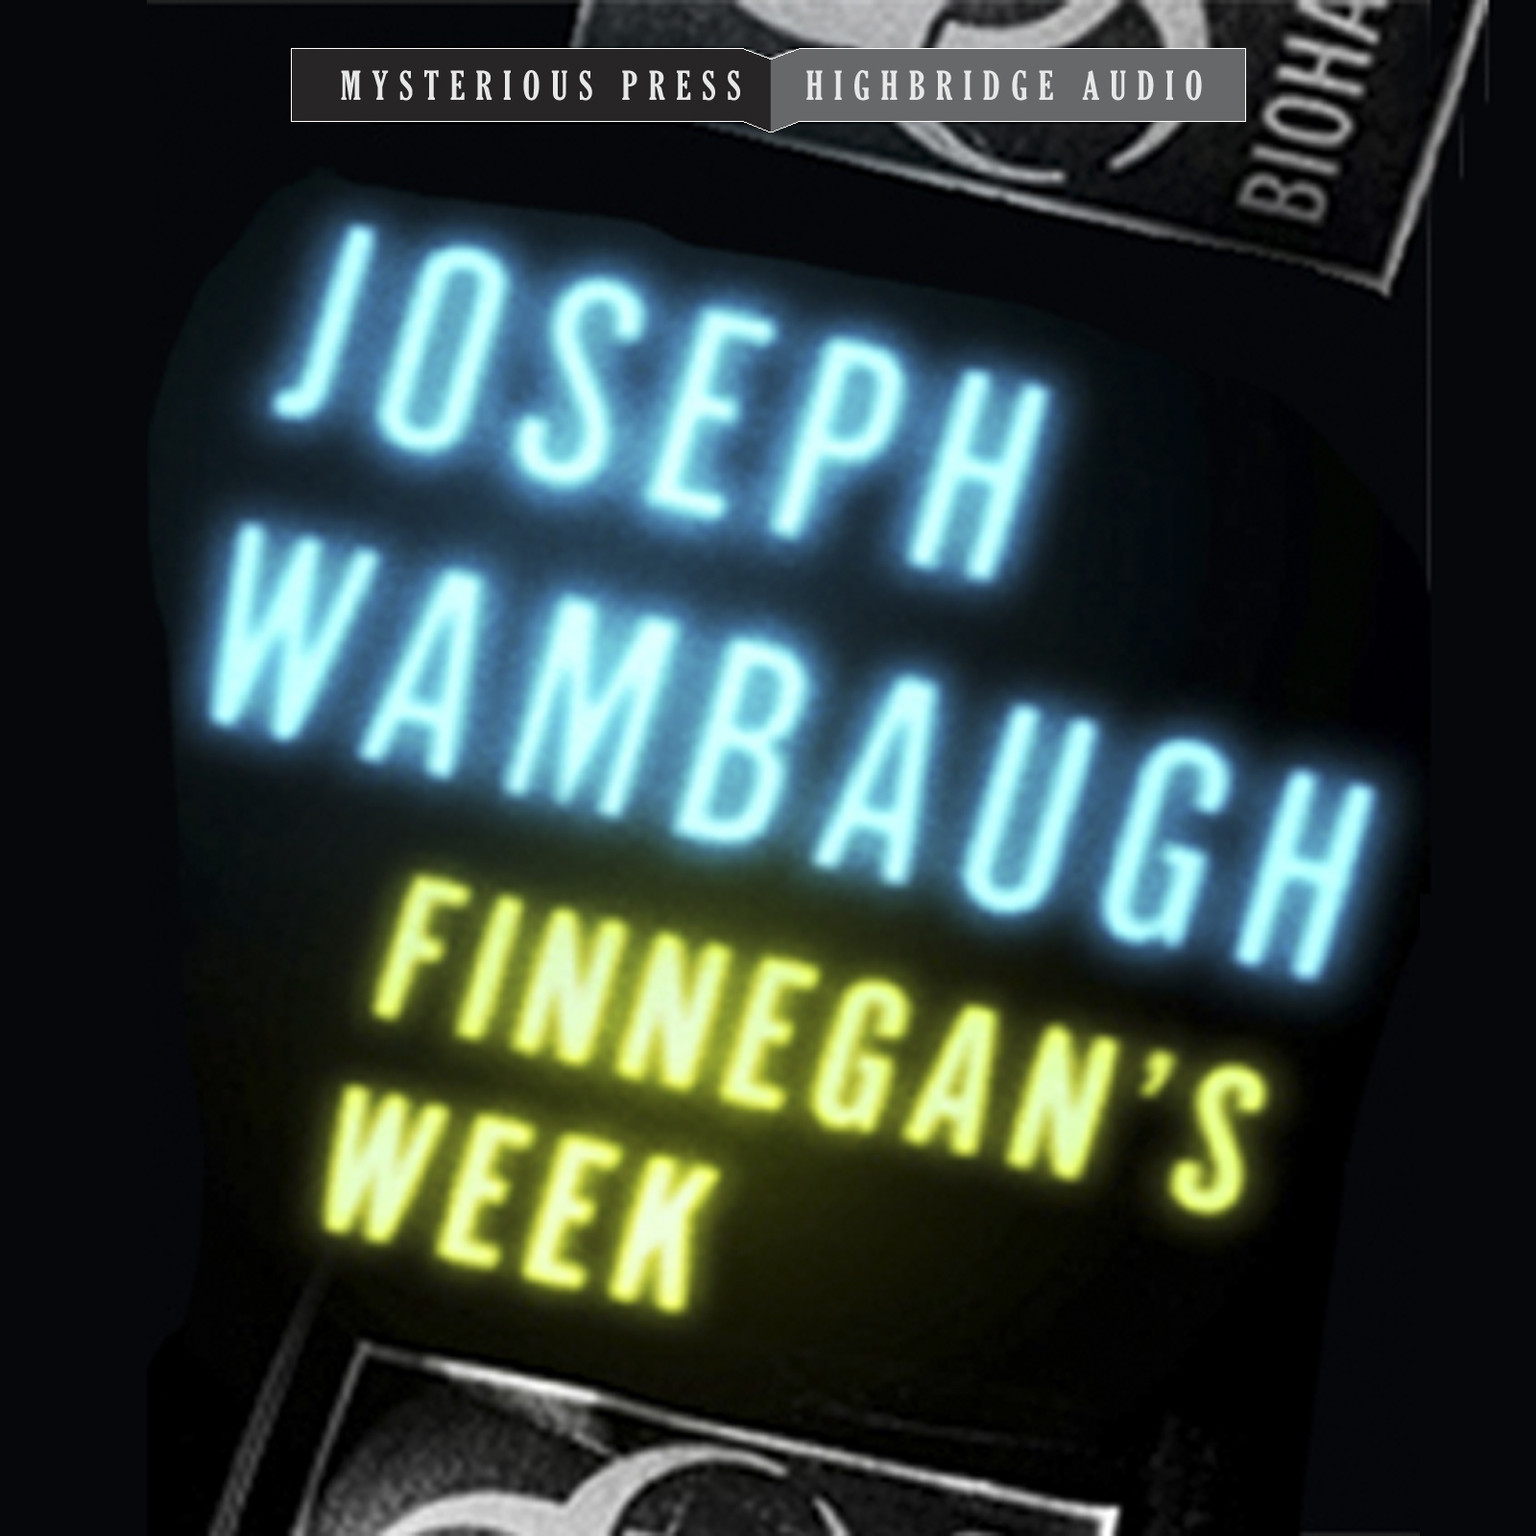 Printable Finnegan's Week Audiobook Cover Art